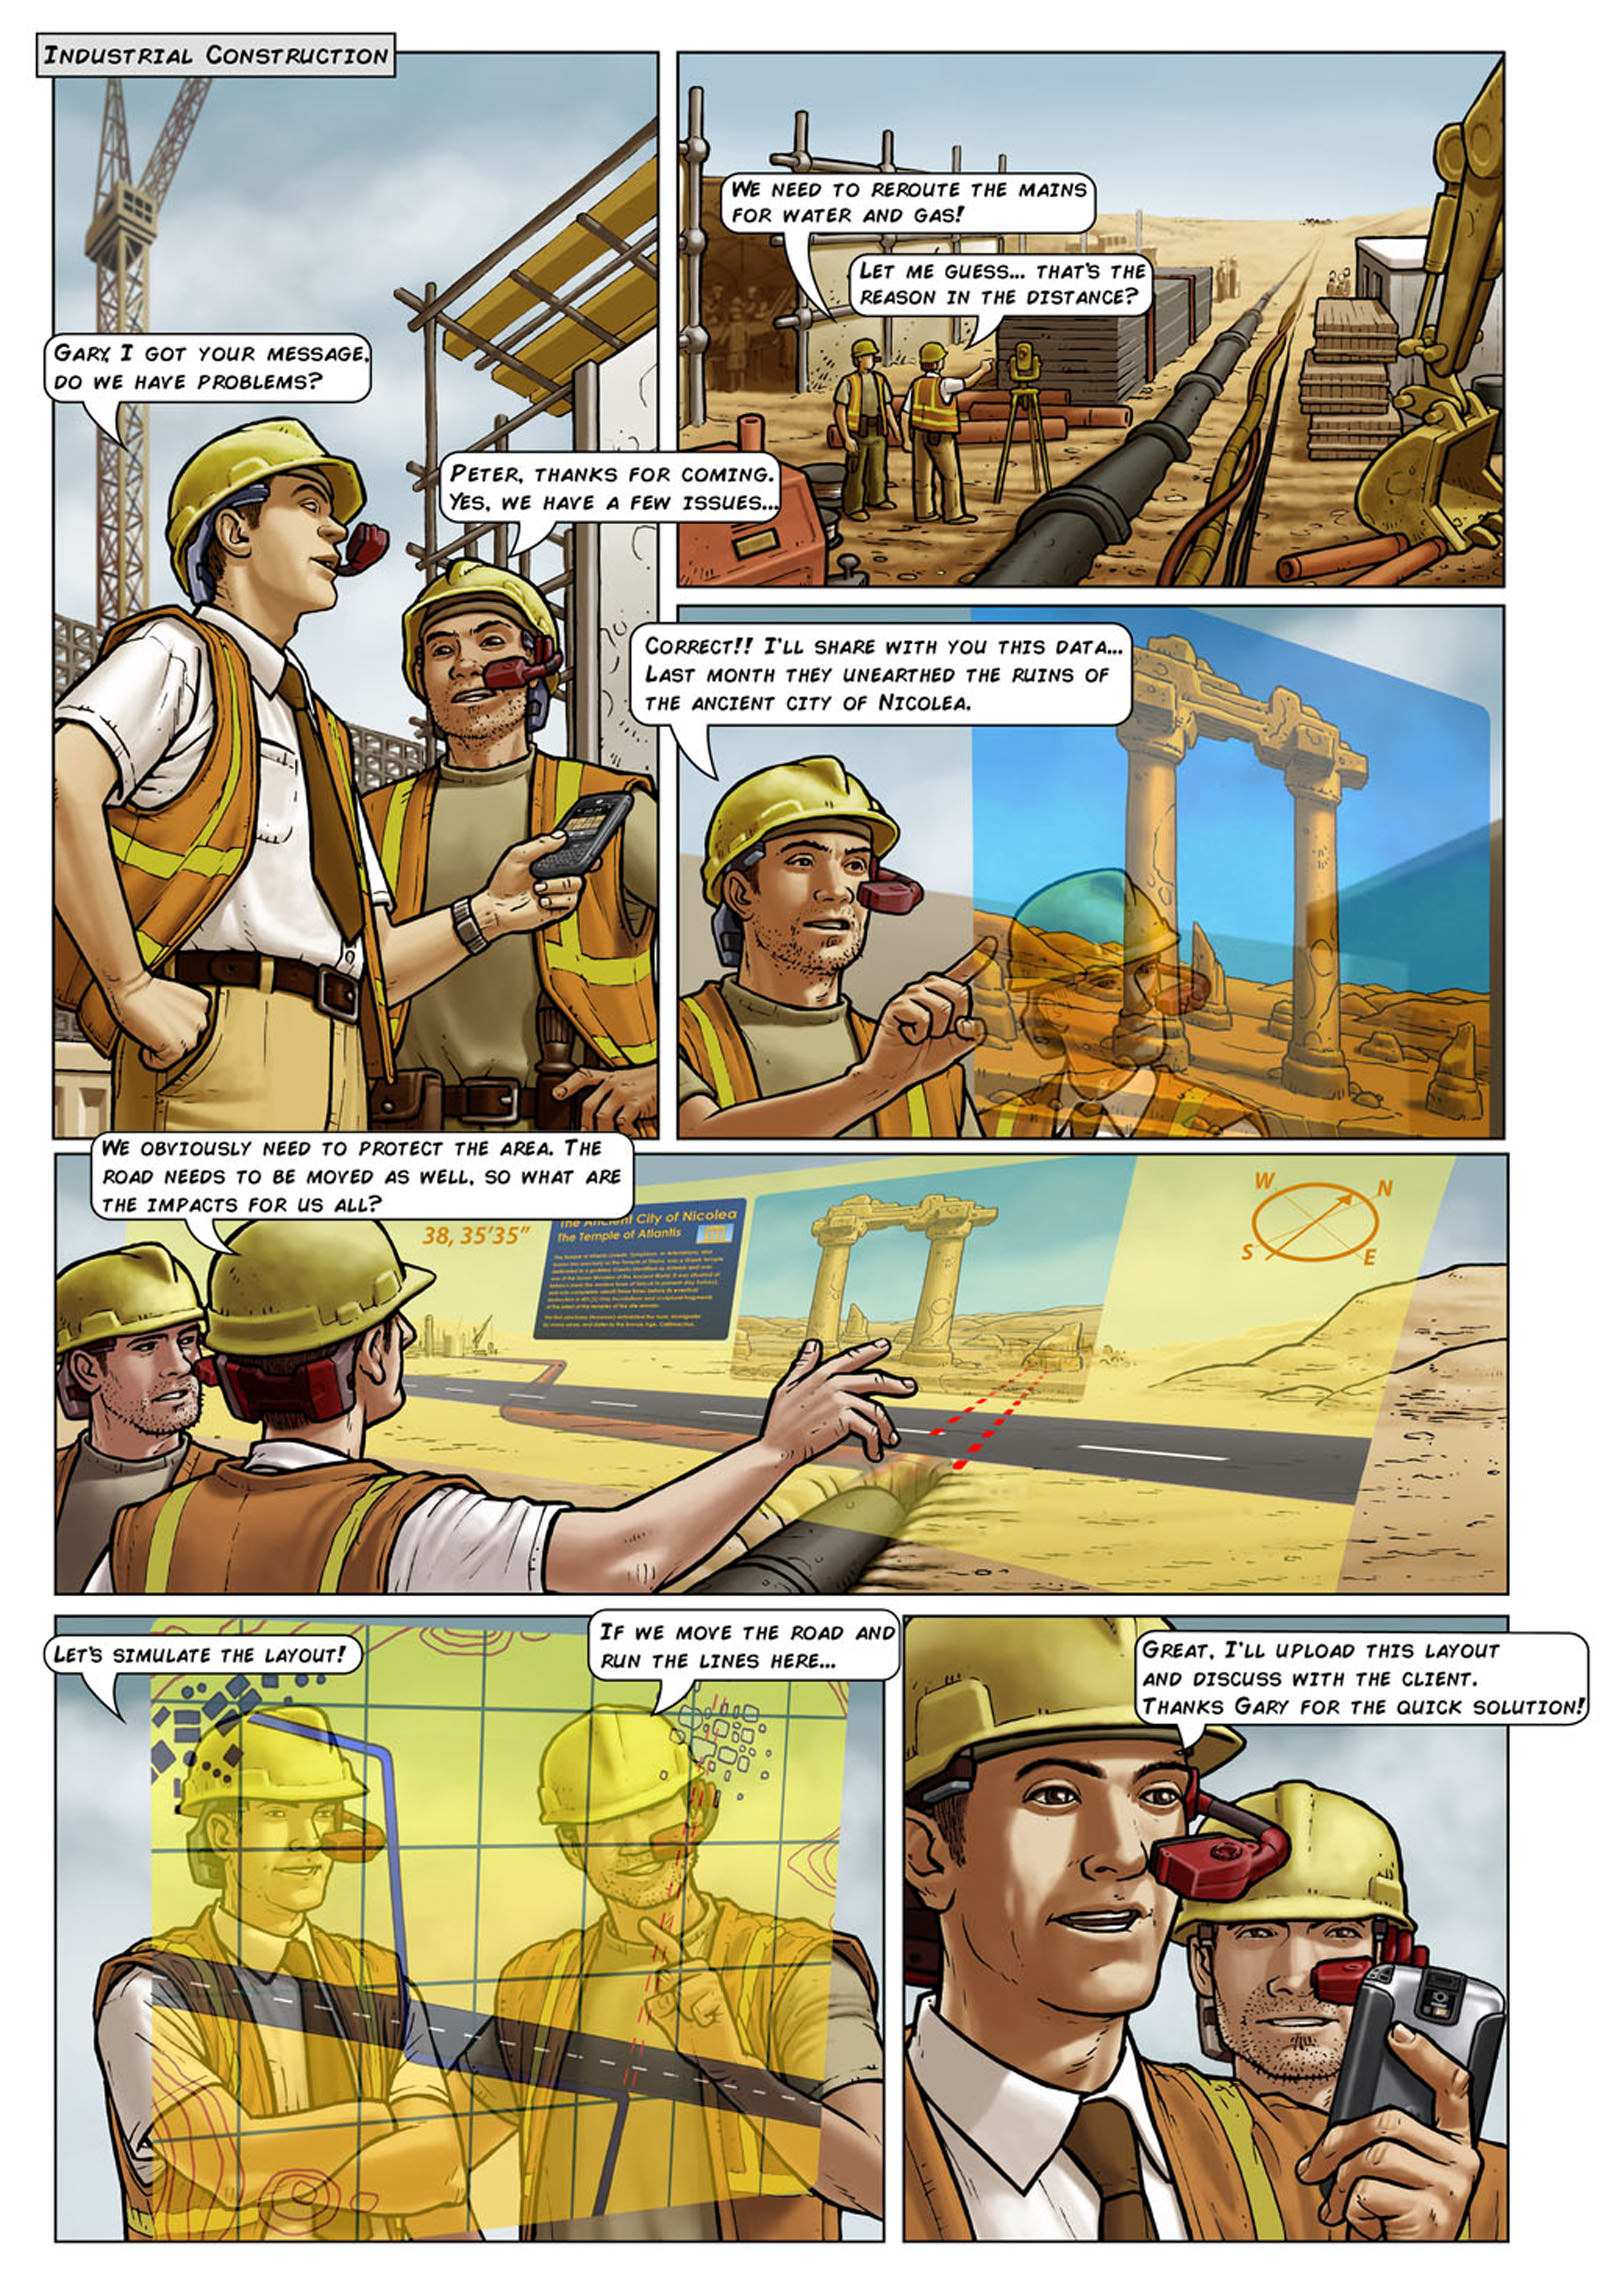 Colourised comic strip of an HMD being worn during an architecture and building operation